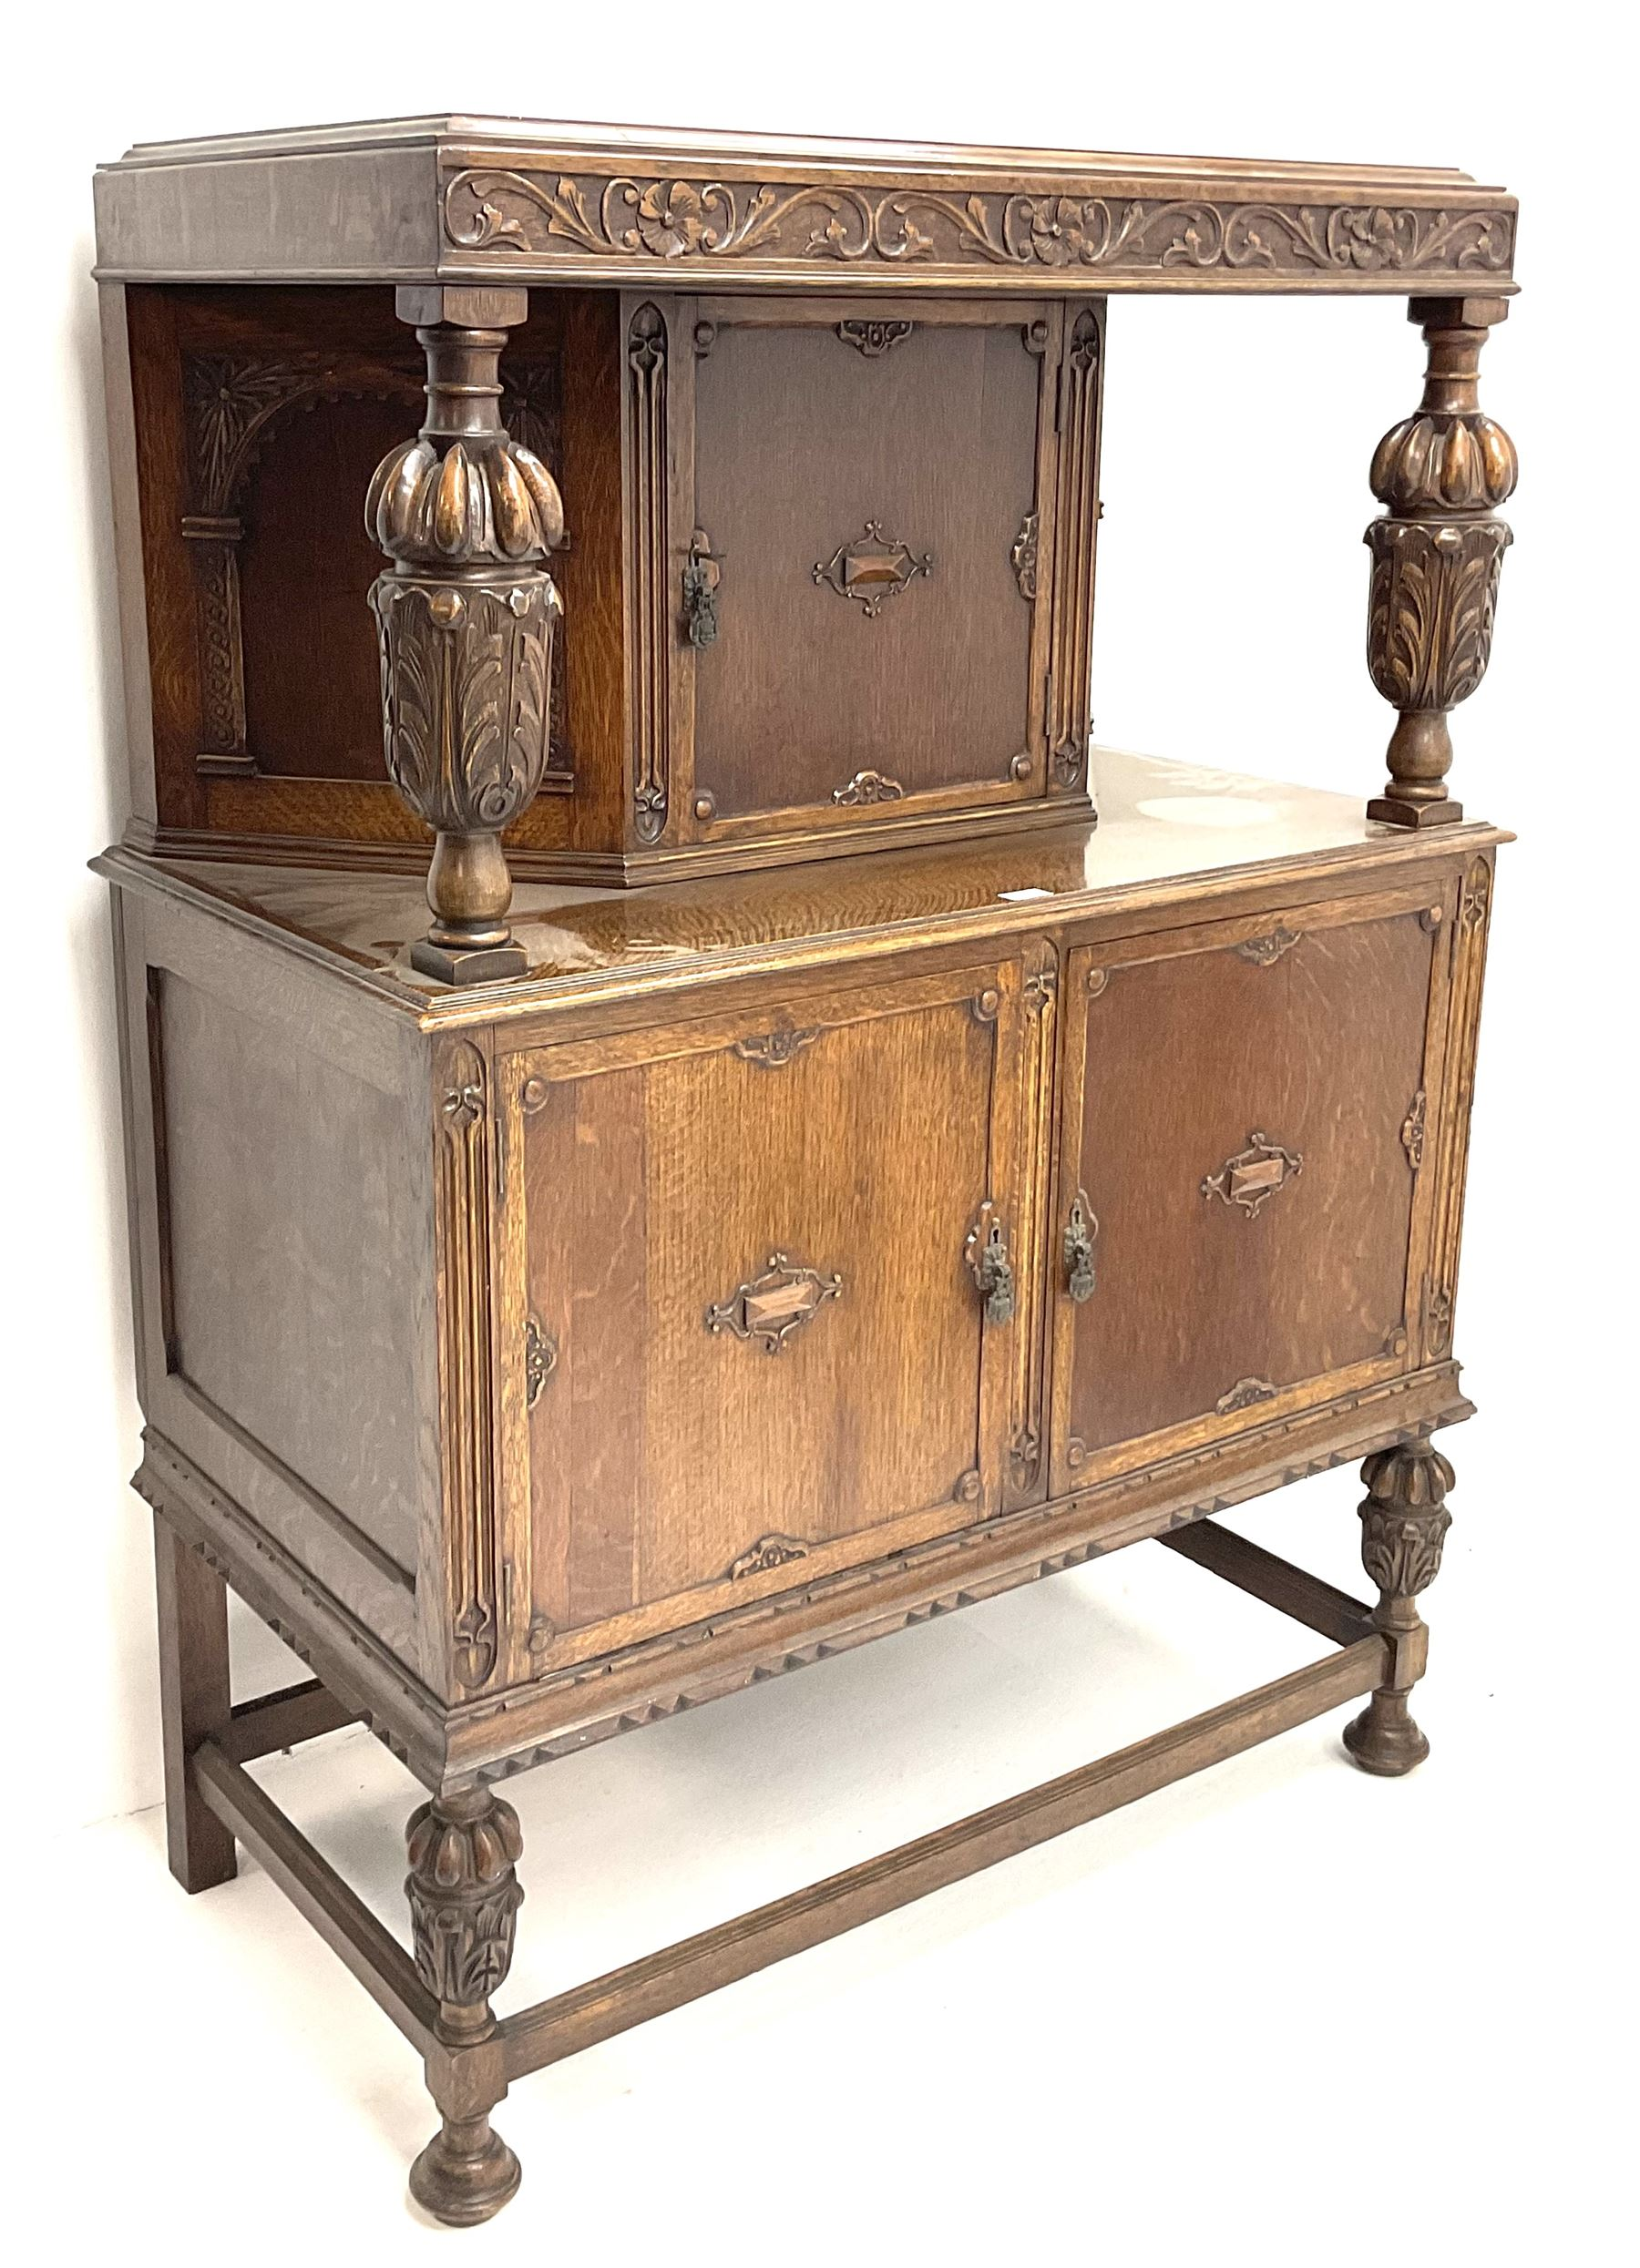 Early 20th century carved oak court cupboard fitted with single cupboard above double cupboard doors - Image 2 of 4